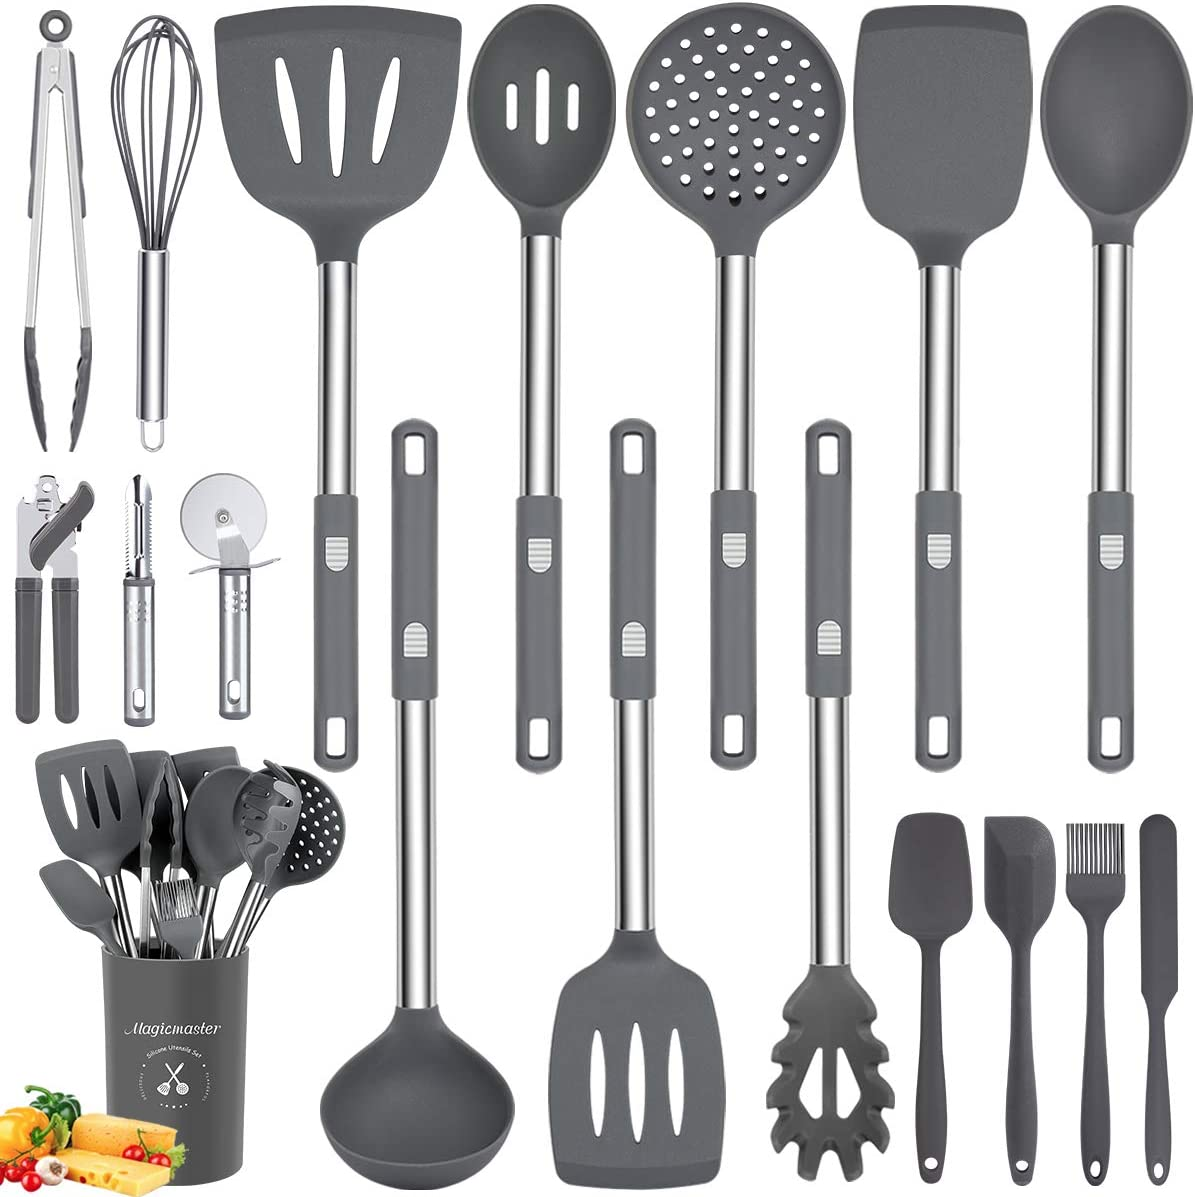 Silicone Utensil Regular store Set 18pcs Kitchen Holder Utensils with St low-pricing